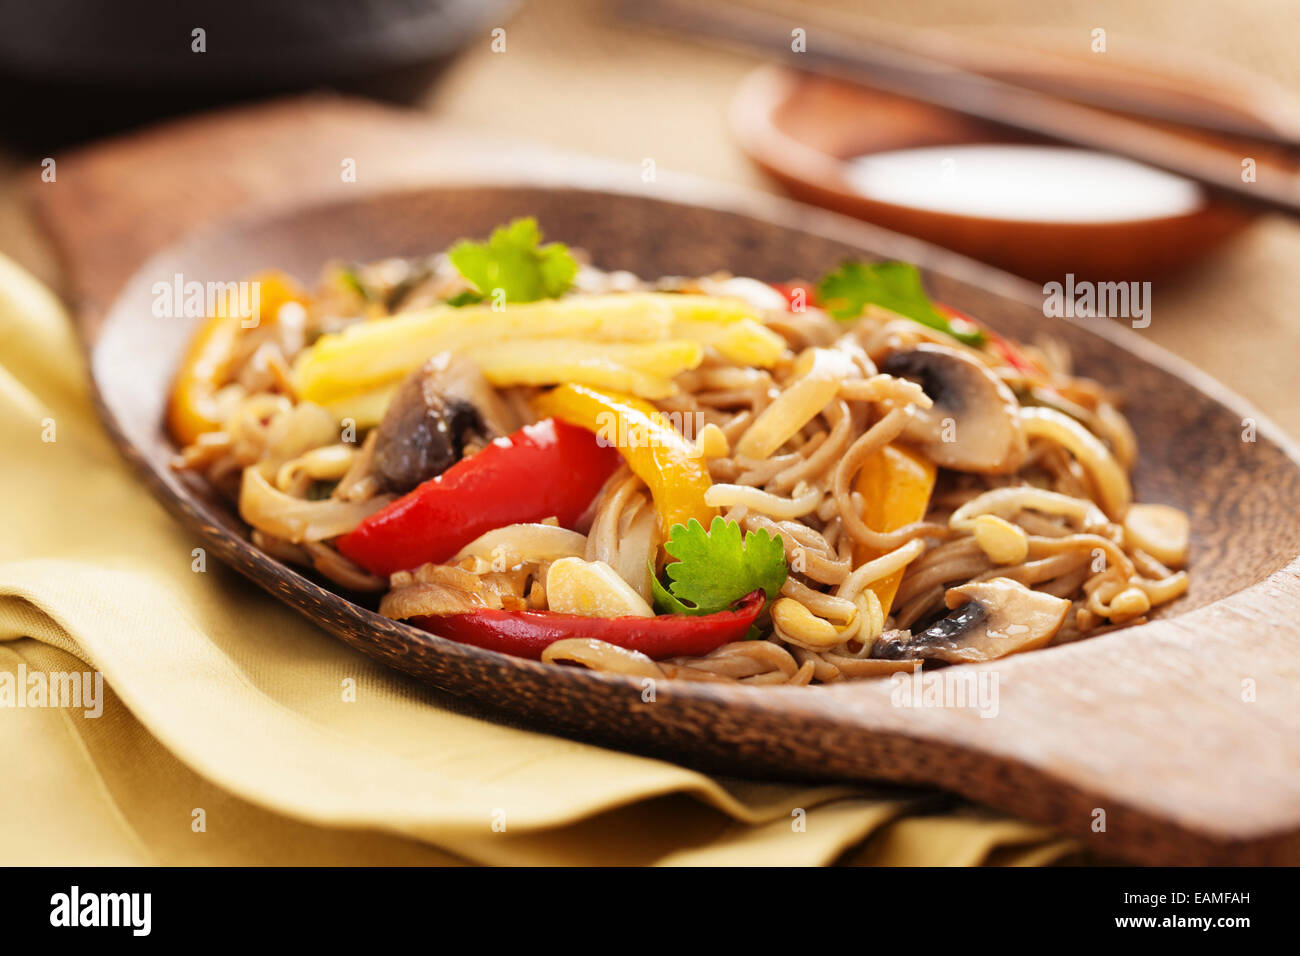 Asian yakisoba noodle with fried vegetables - Stock Image